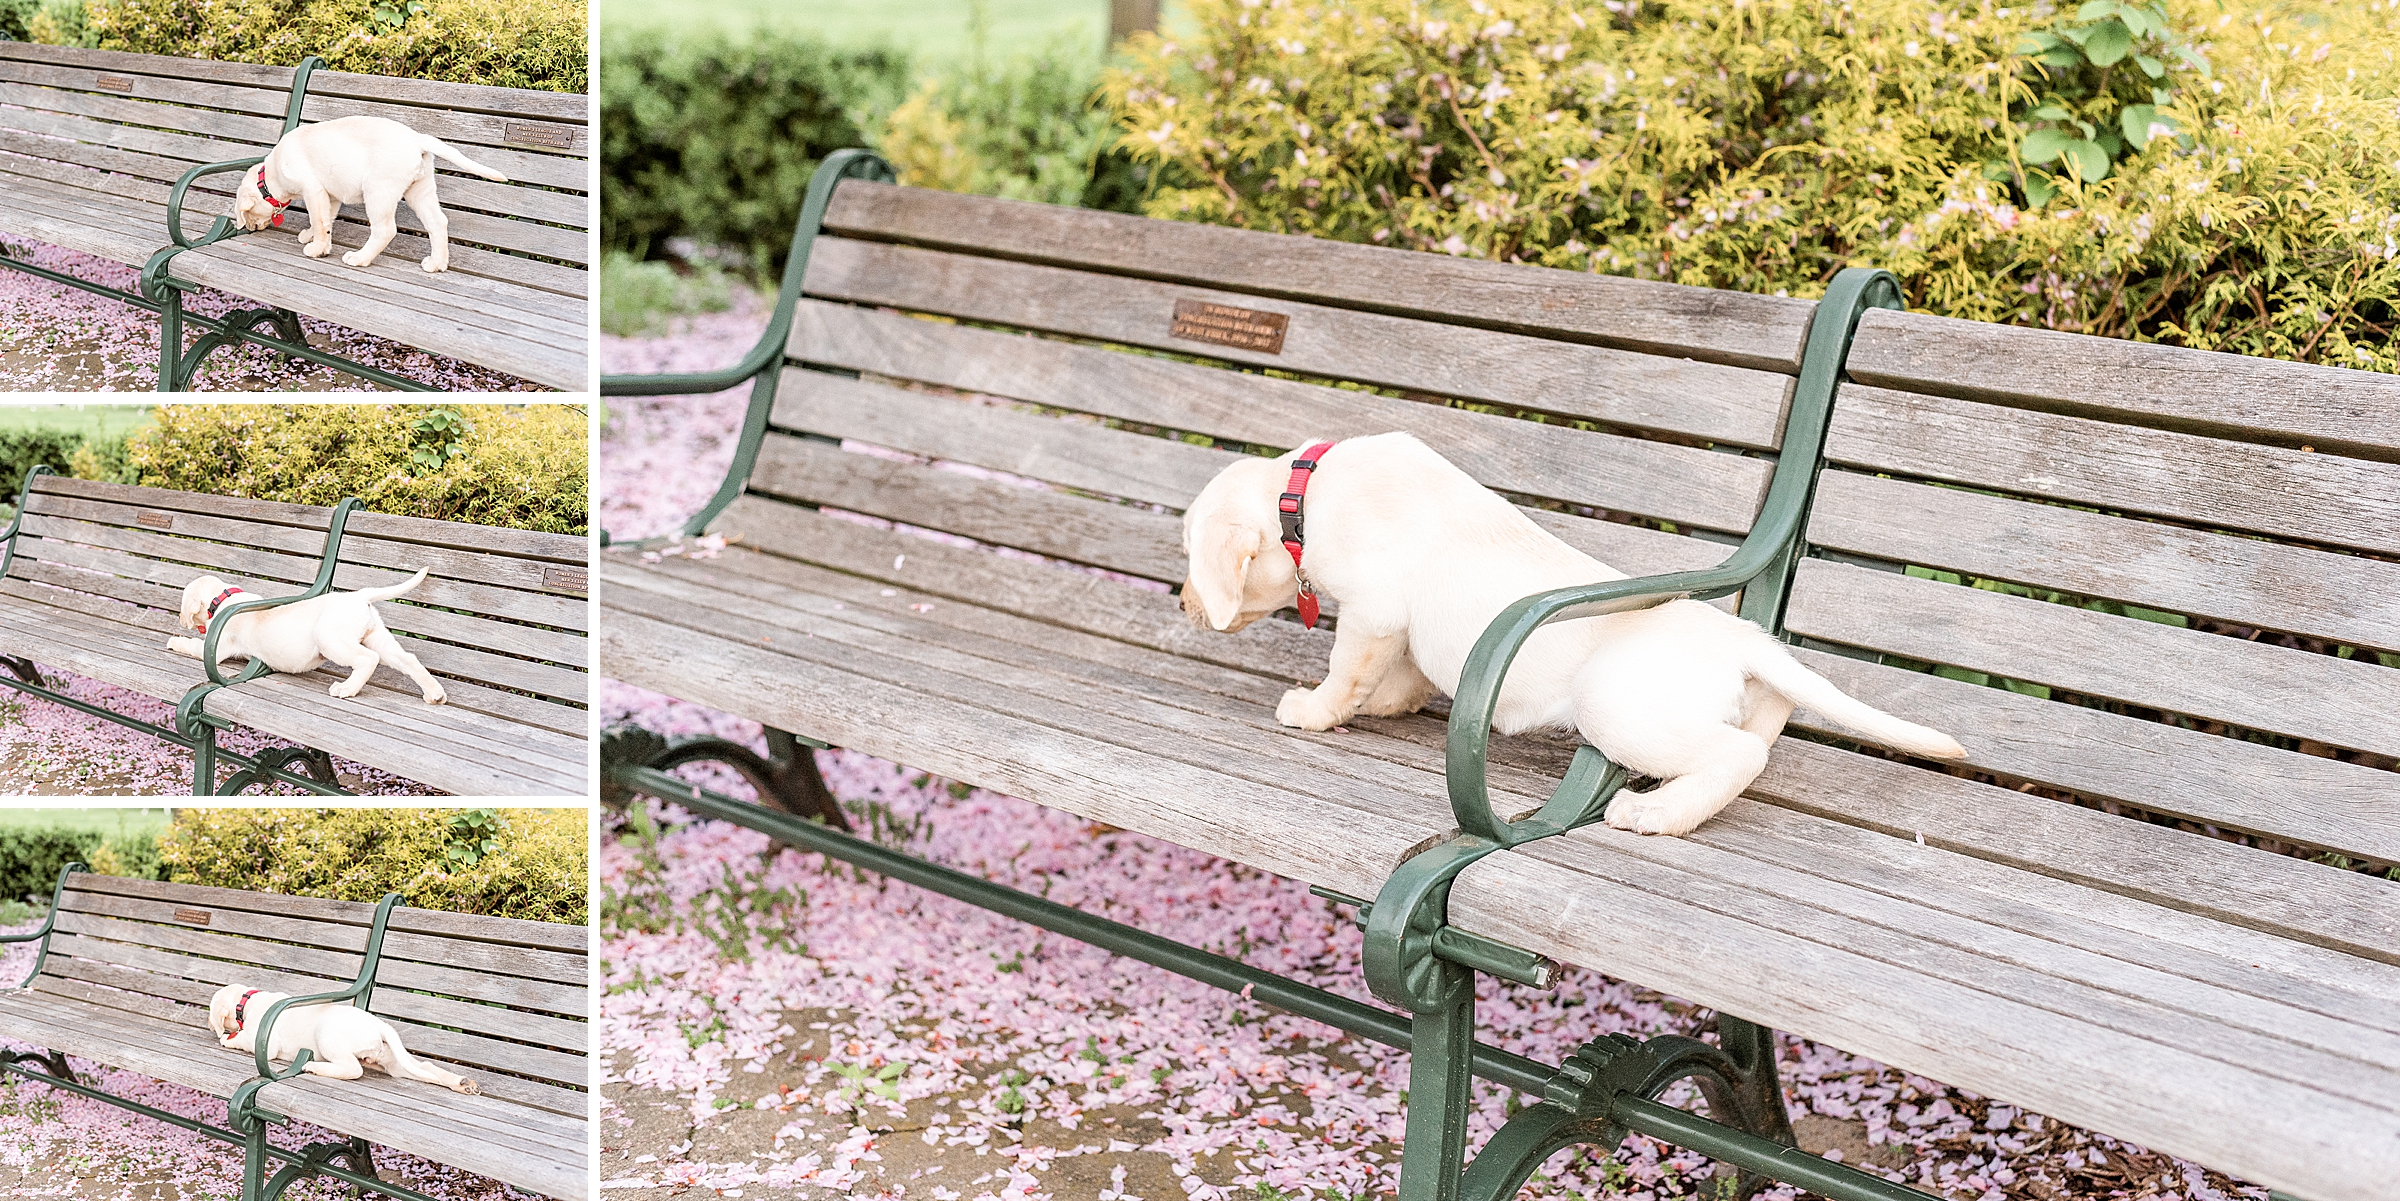 Cute puppy on a bench in a park in Verona NJ